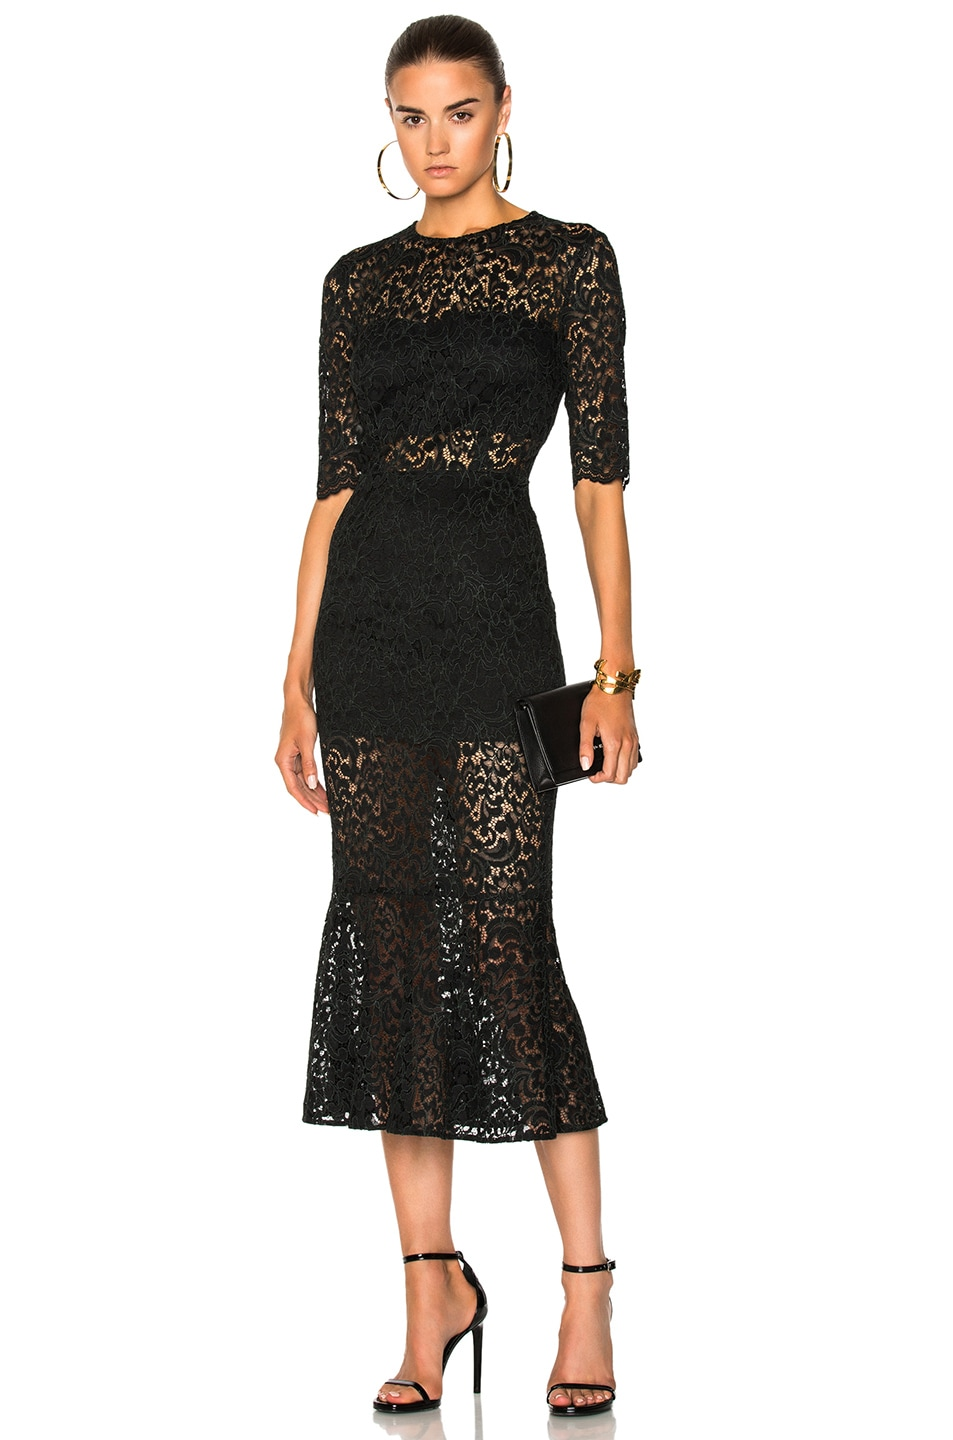 VERONICA BEARD LINDEN DRESS IN BLACK